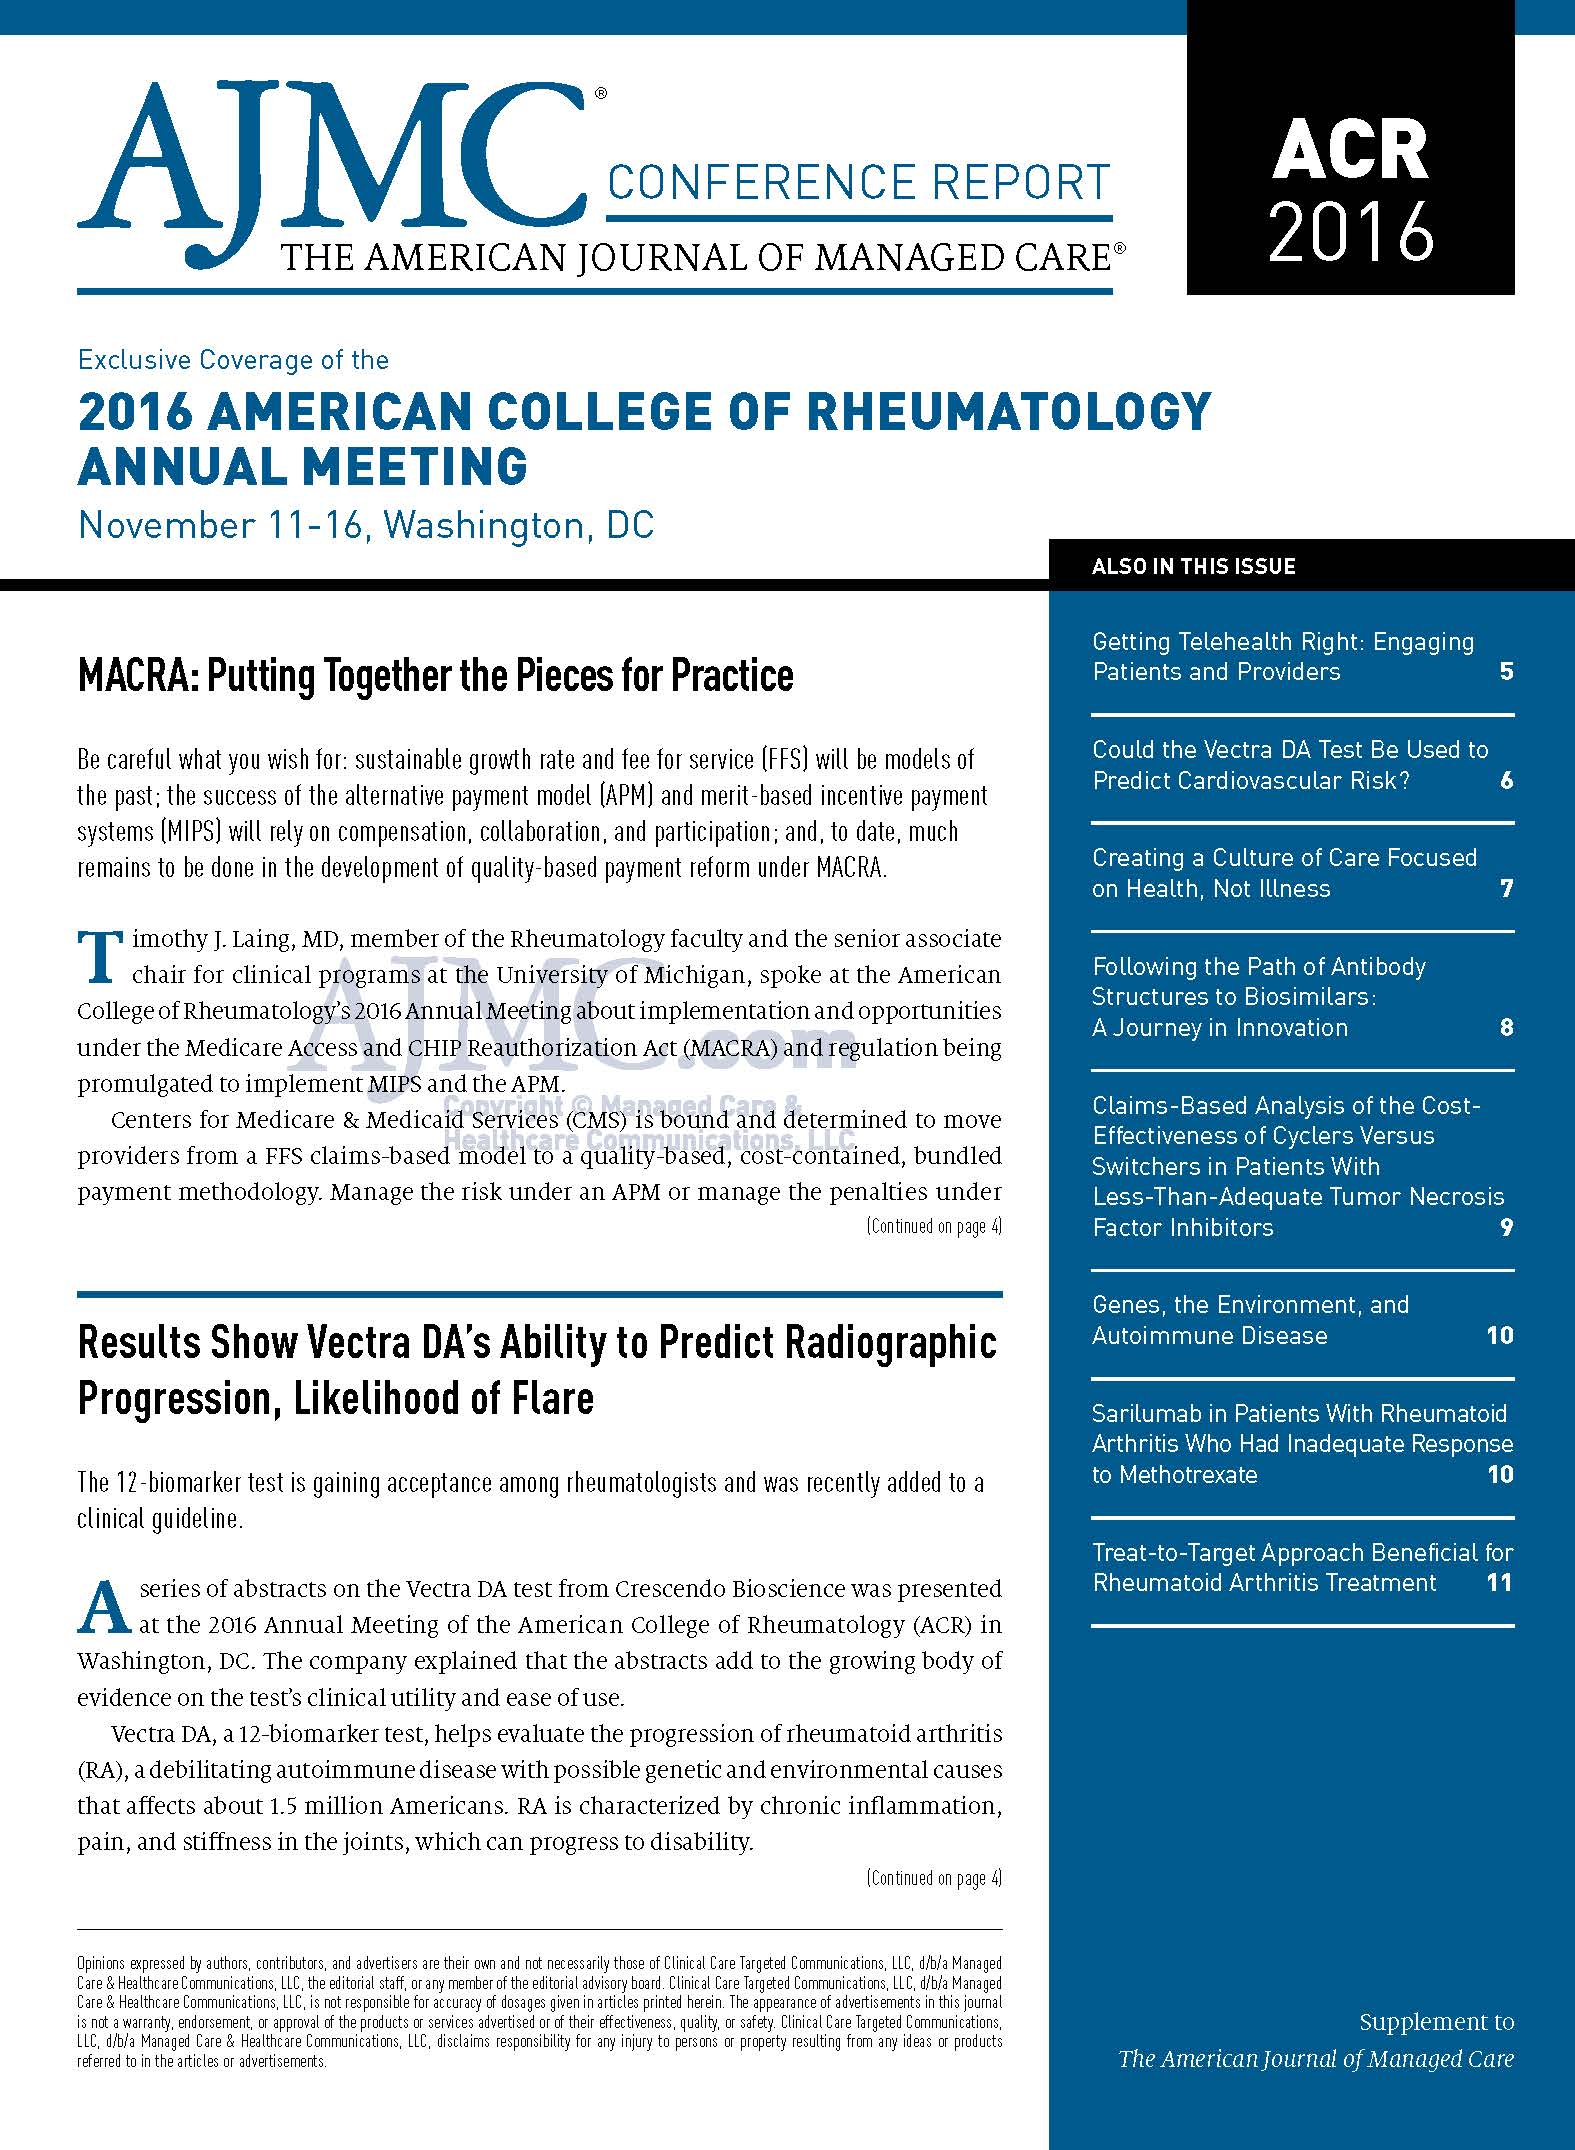 Exclusive Coverage of the American College of Rheumatology Annual Meeting Washington, DC November 11-16, 2016